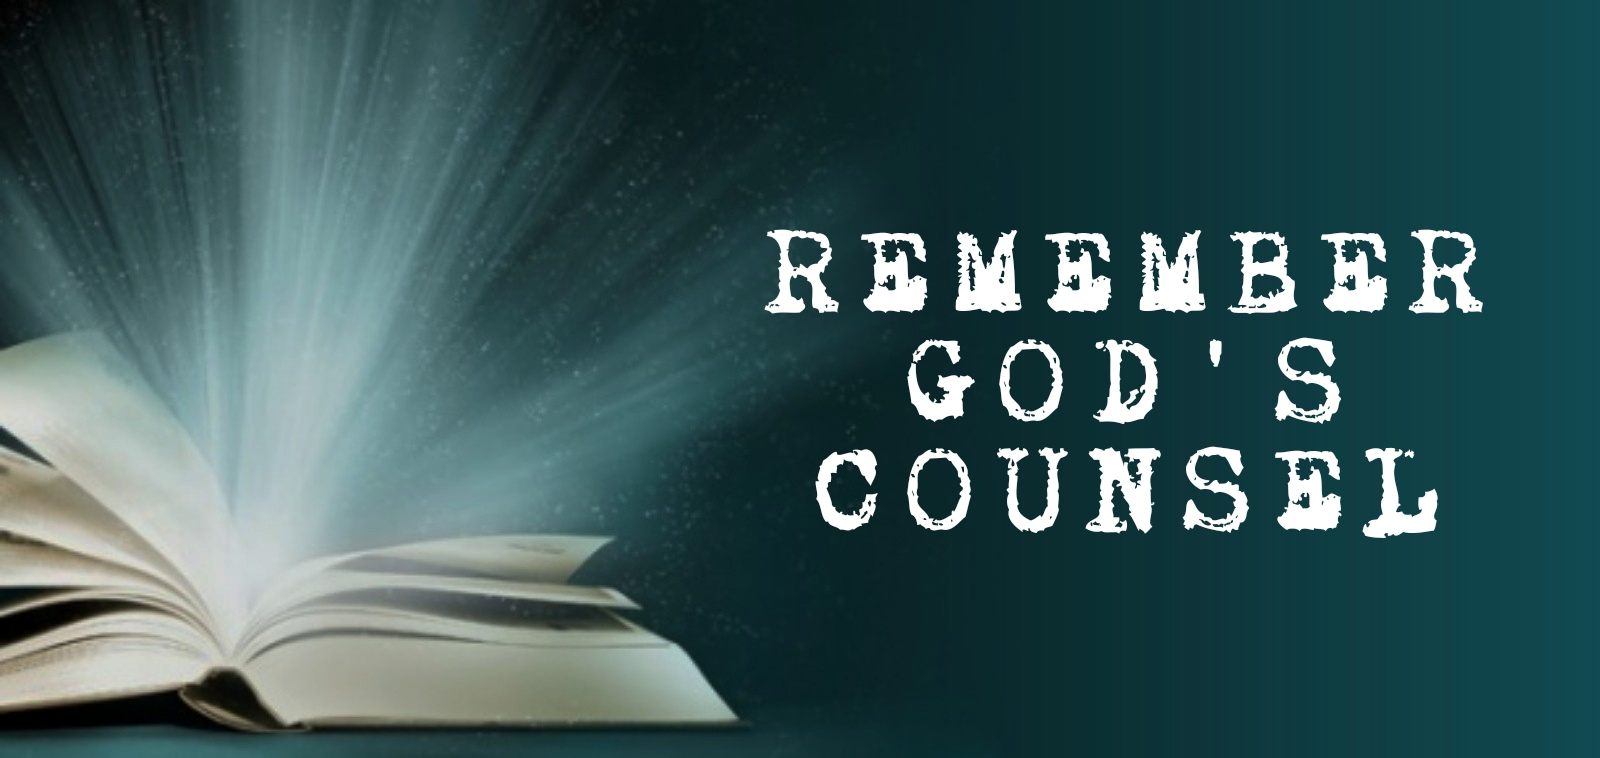 remember God's counsel 09.16.18.jpg